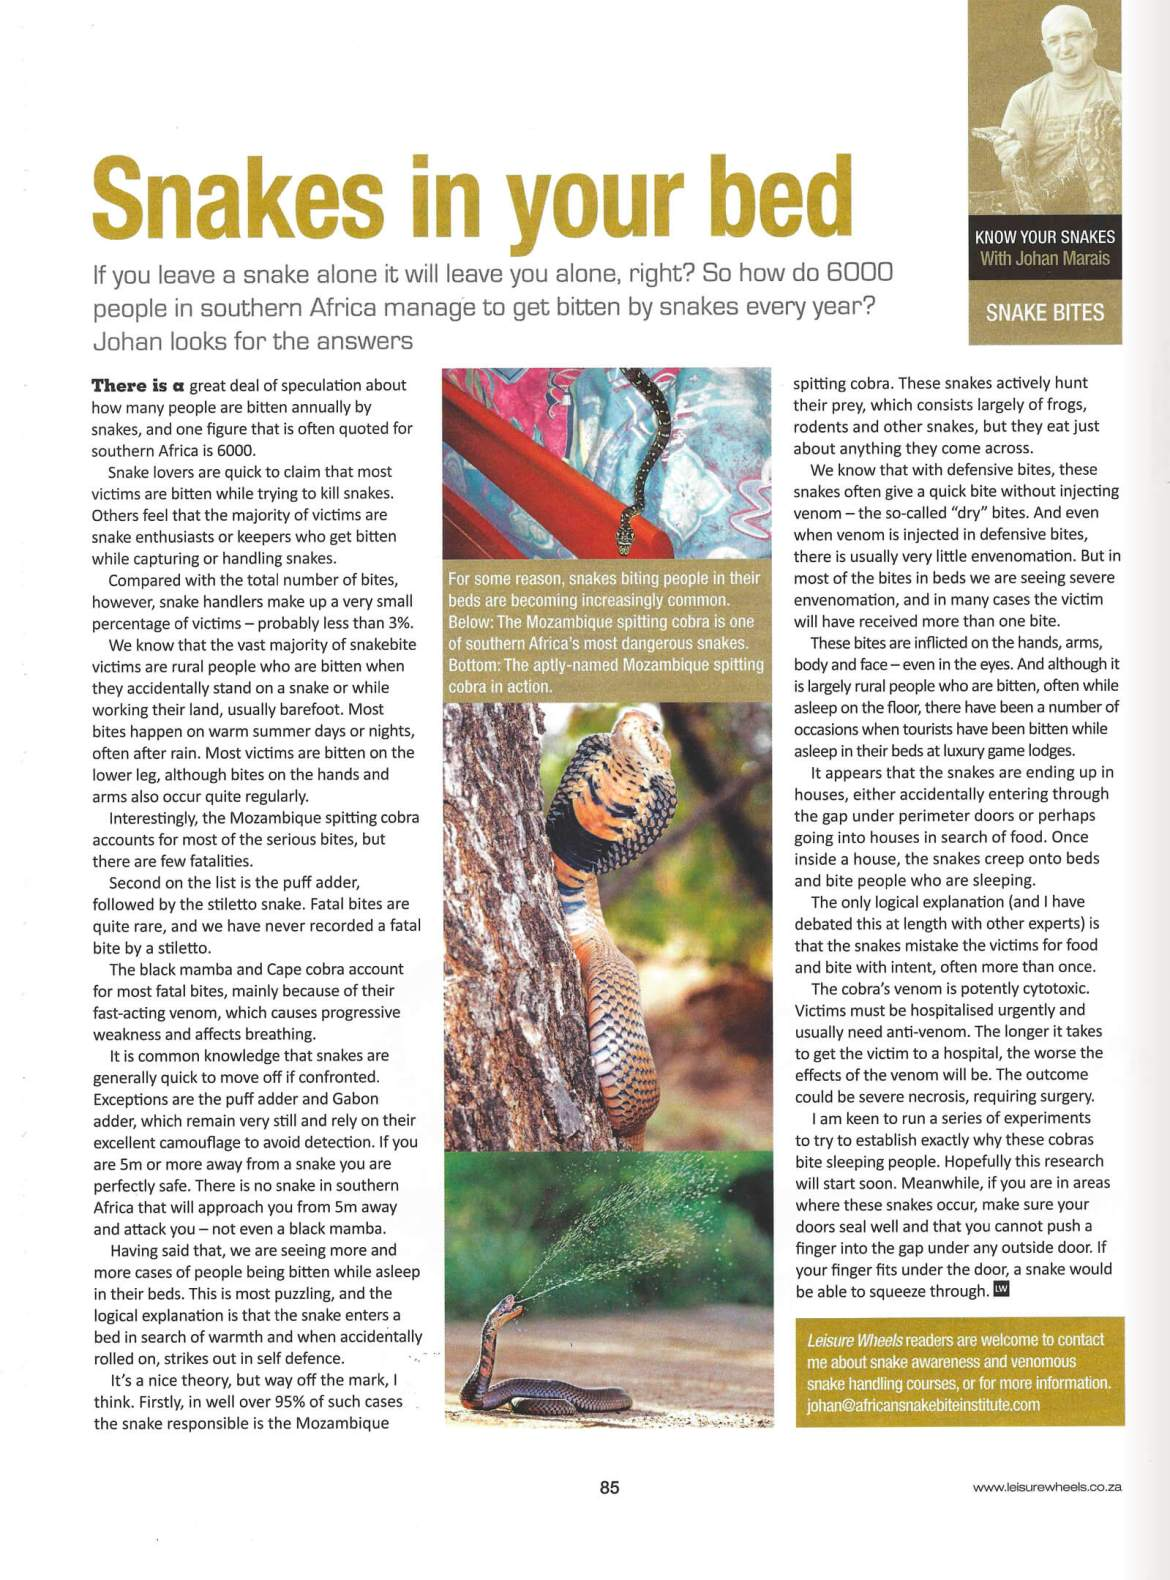 mozambique-spitting-cobra-article